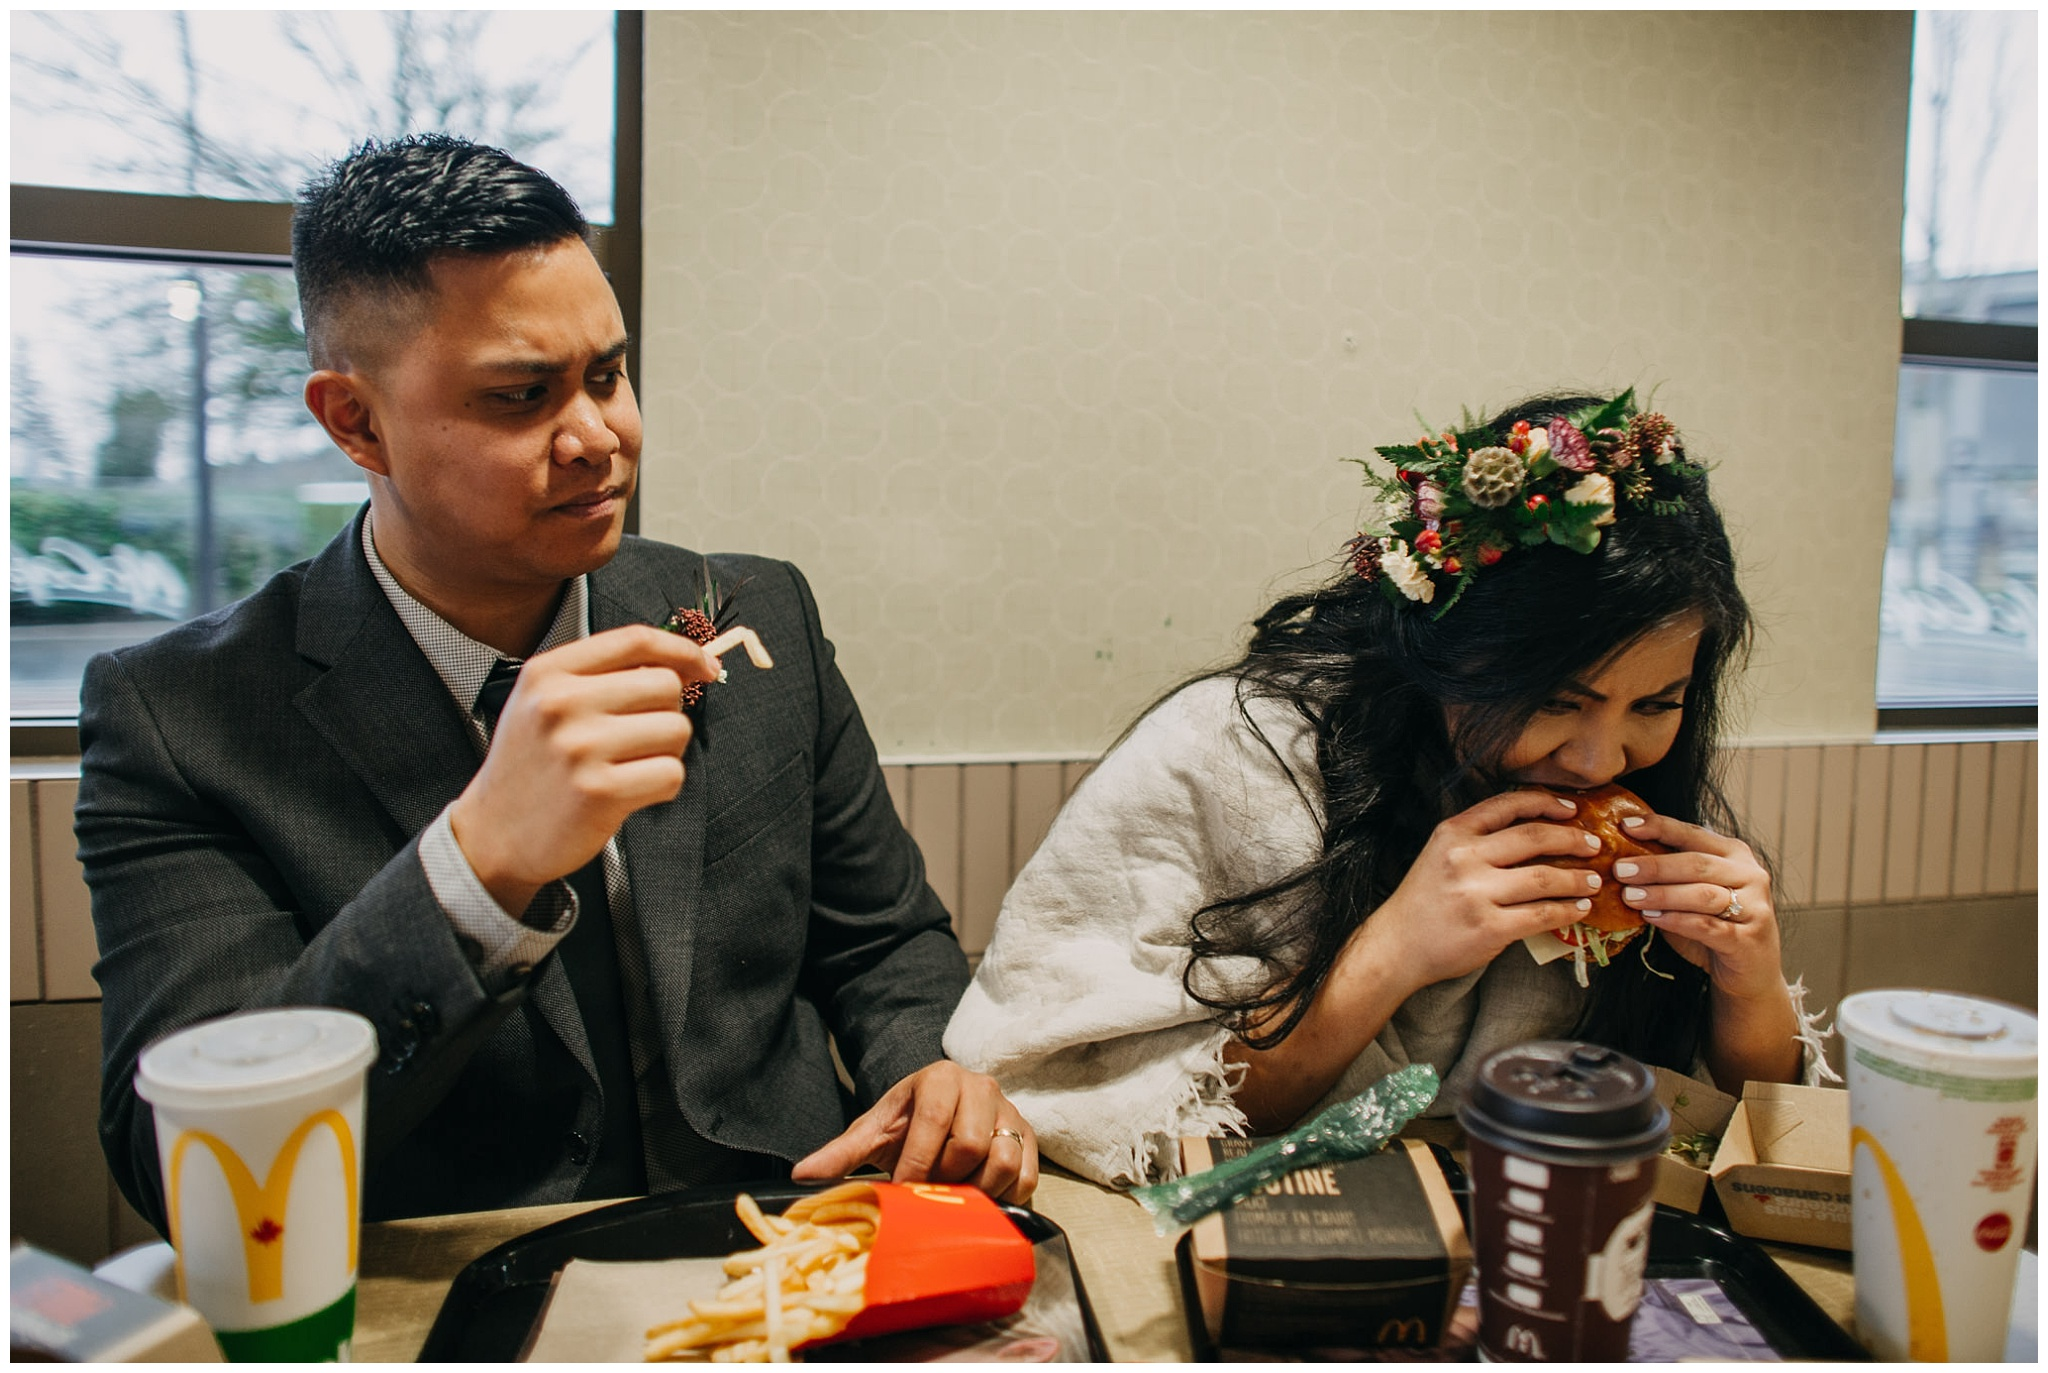 bride groom eating mcdonalds on wedding day vancouver wedding